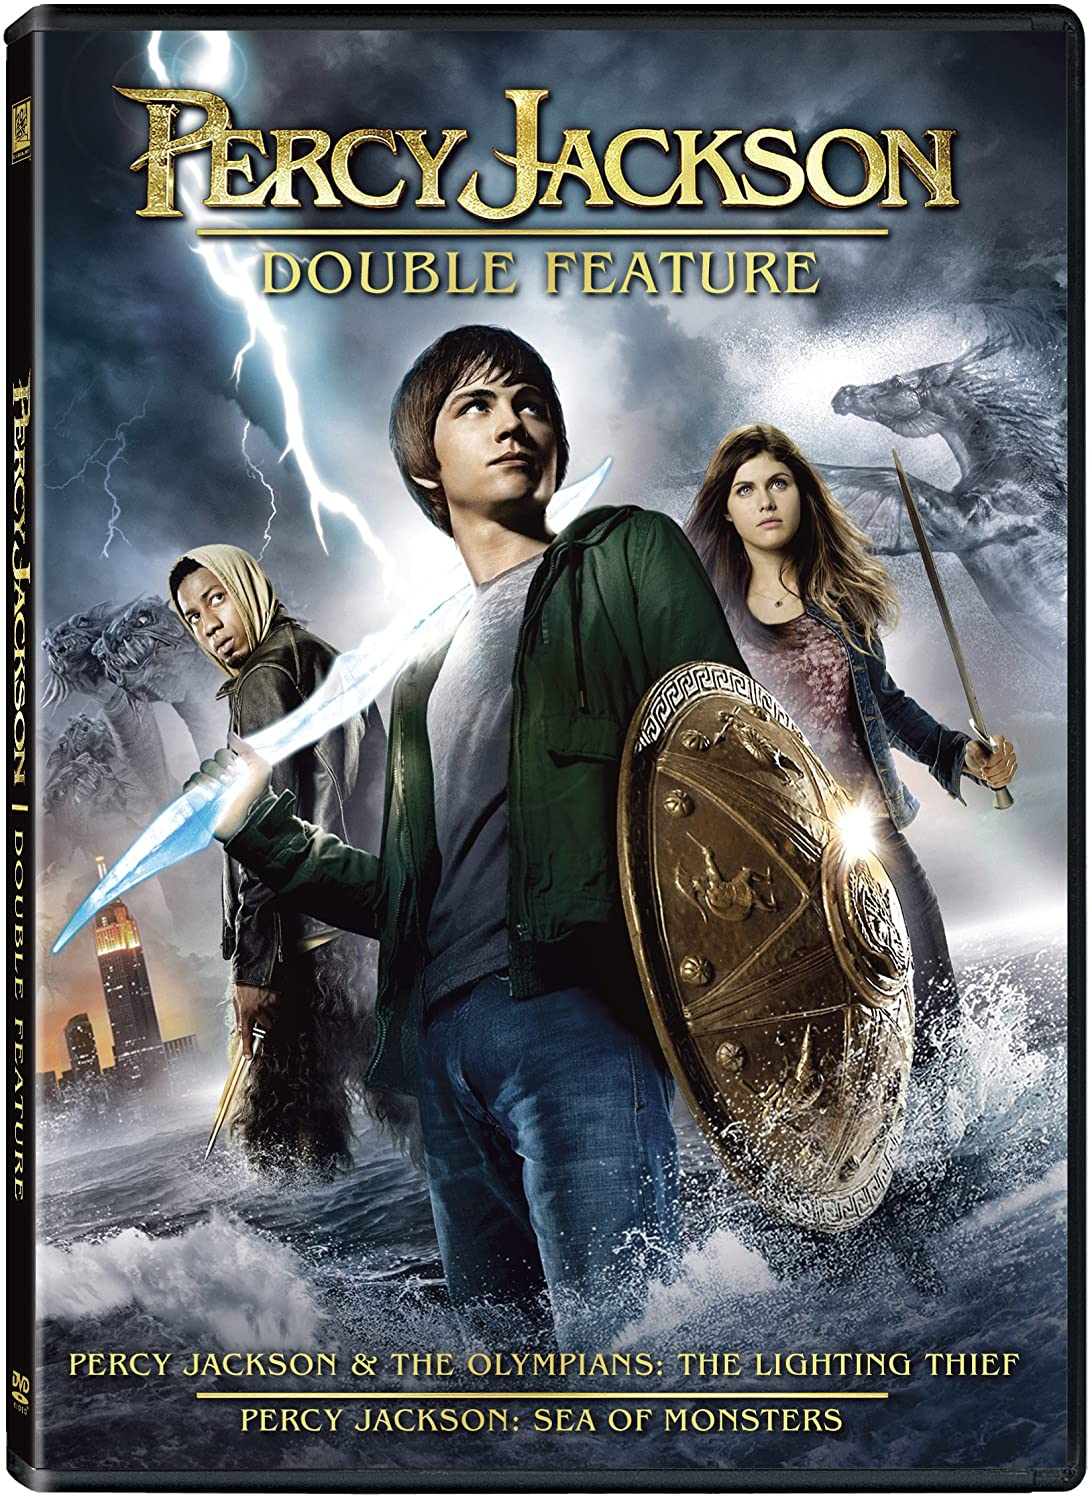 Amazon Com Percy Jackson Double Feature Logan Lerman Brandon T Jackson Alexandra Daddario Sean Bean Pierce Brosnan Jake Abel Annie Ilonzeh